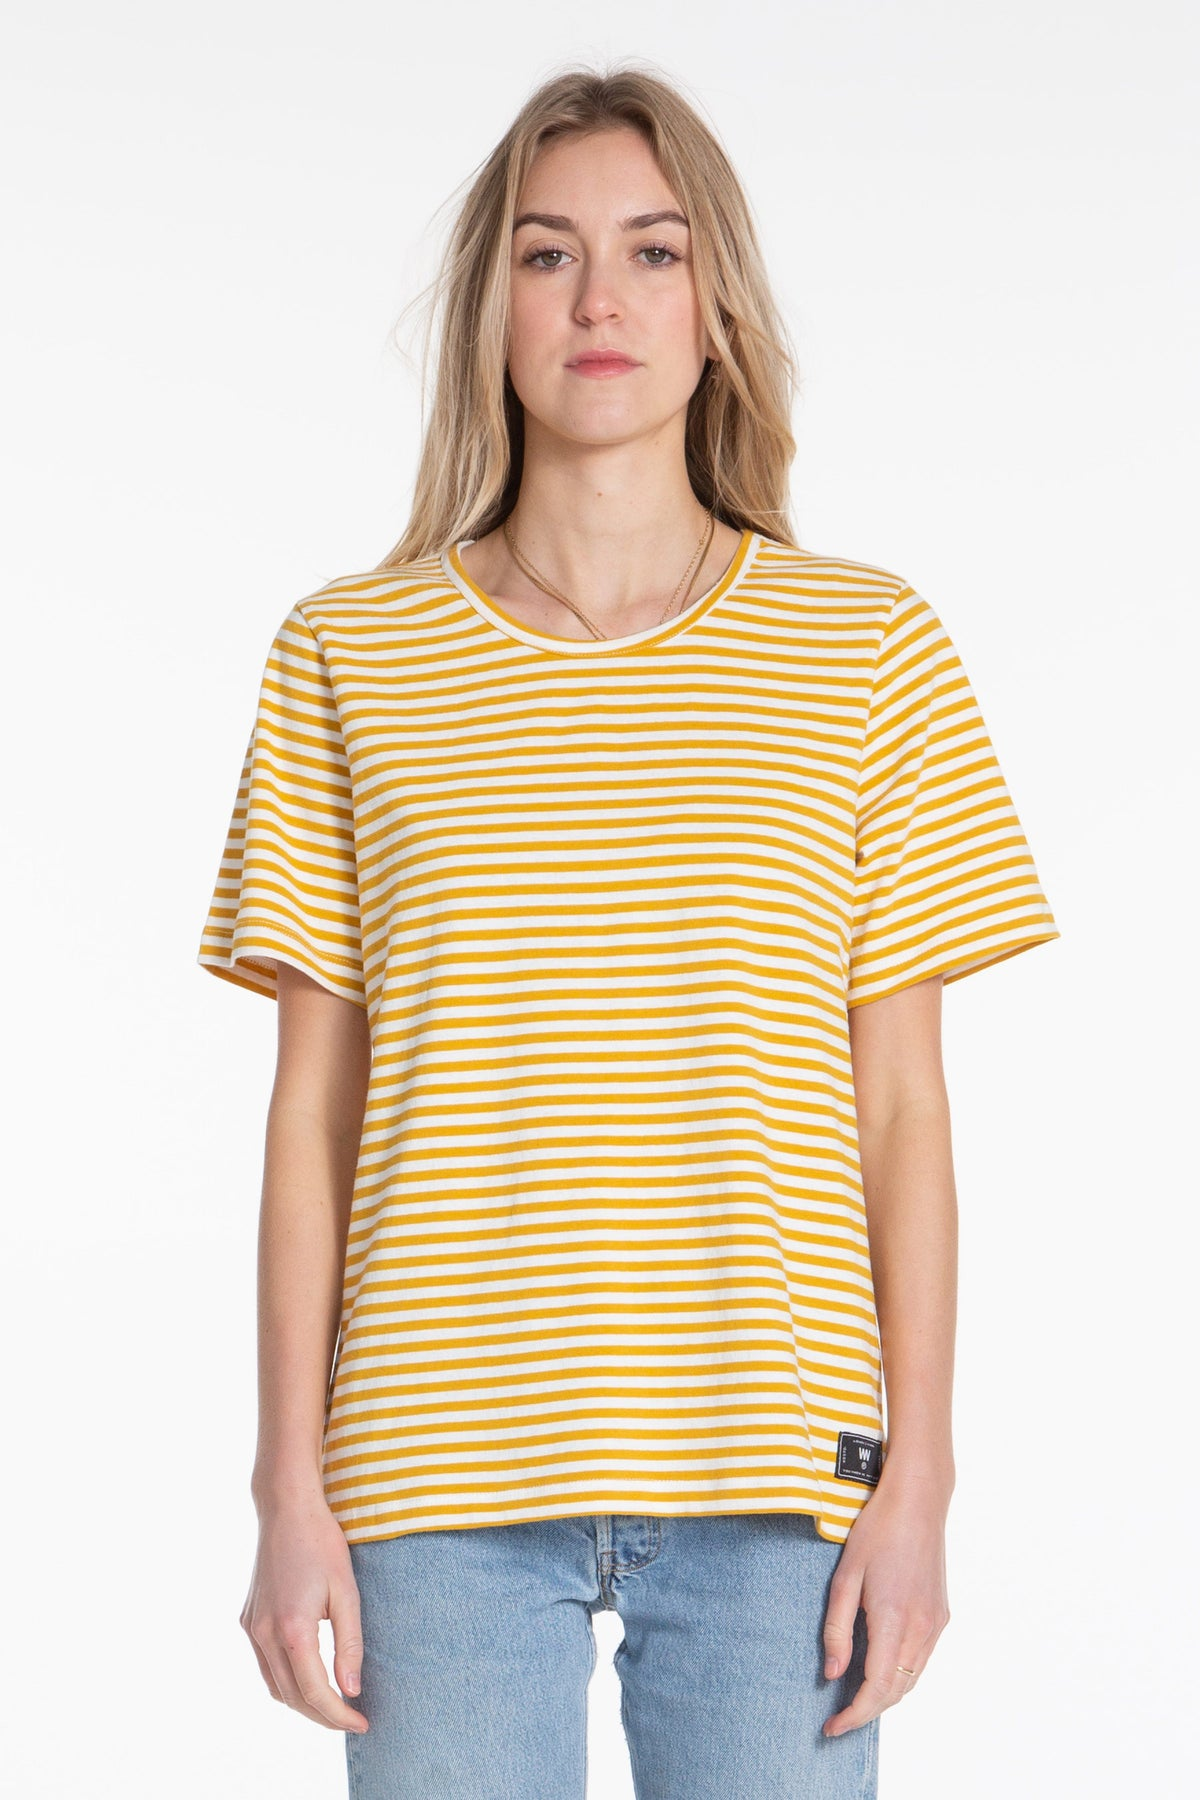 Classic Tee - Cream/Gold Stripe